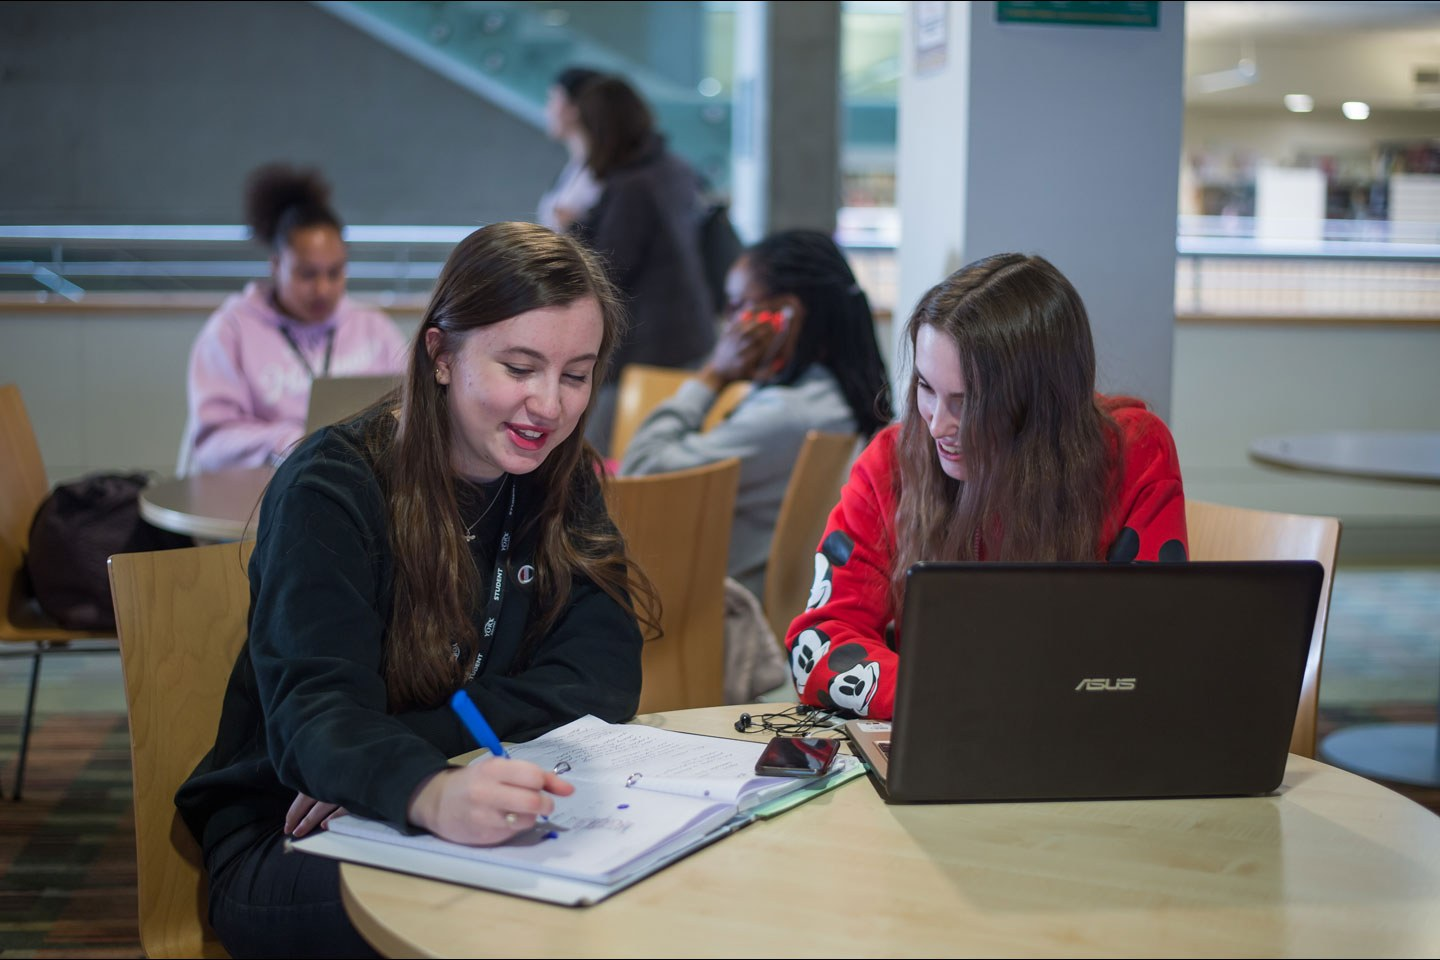 Two students working in the Learning Resource Centre